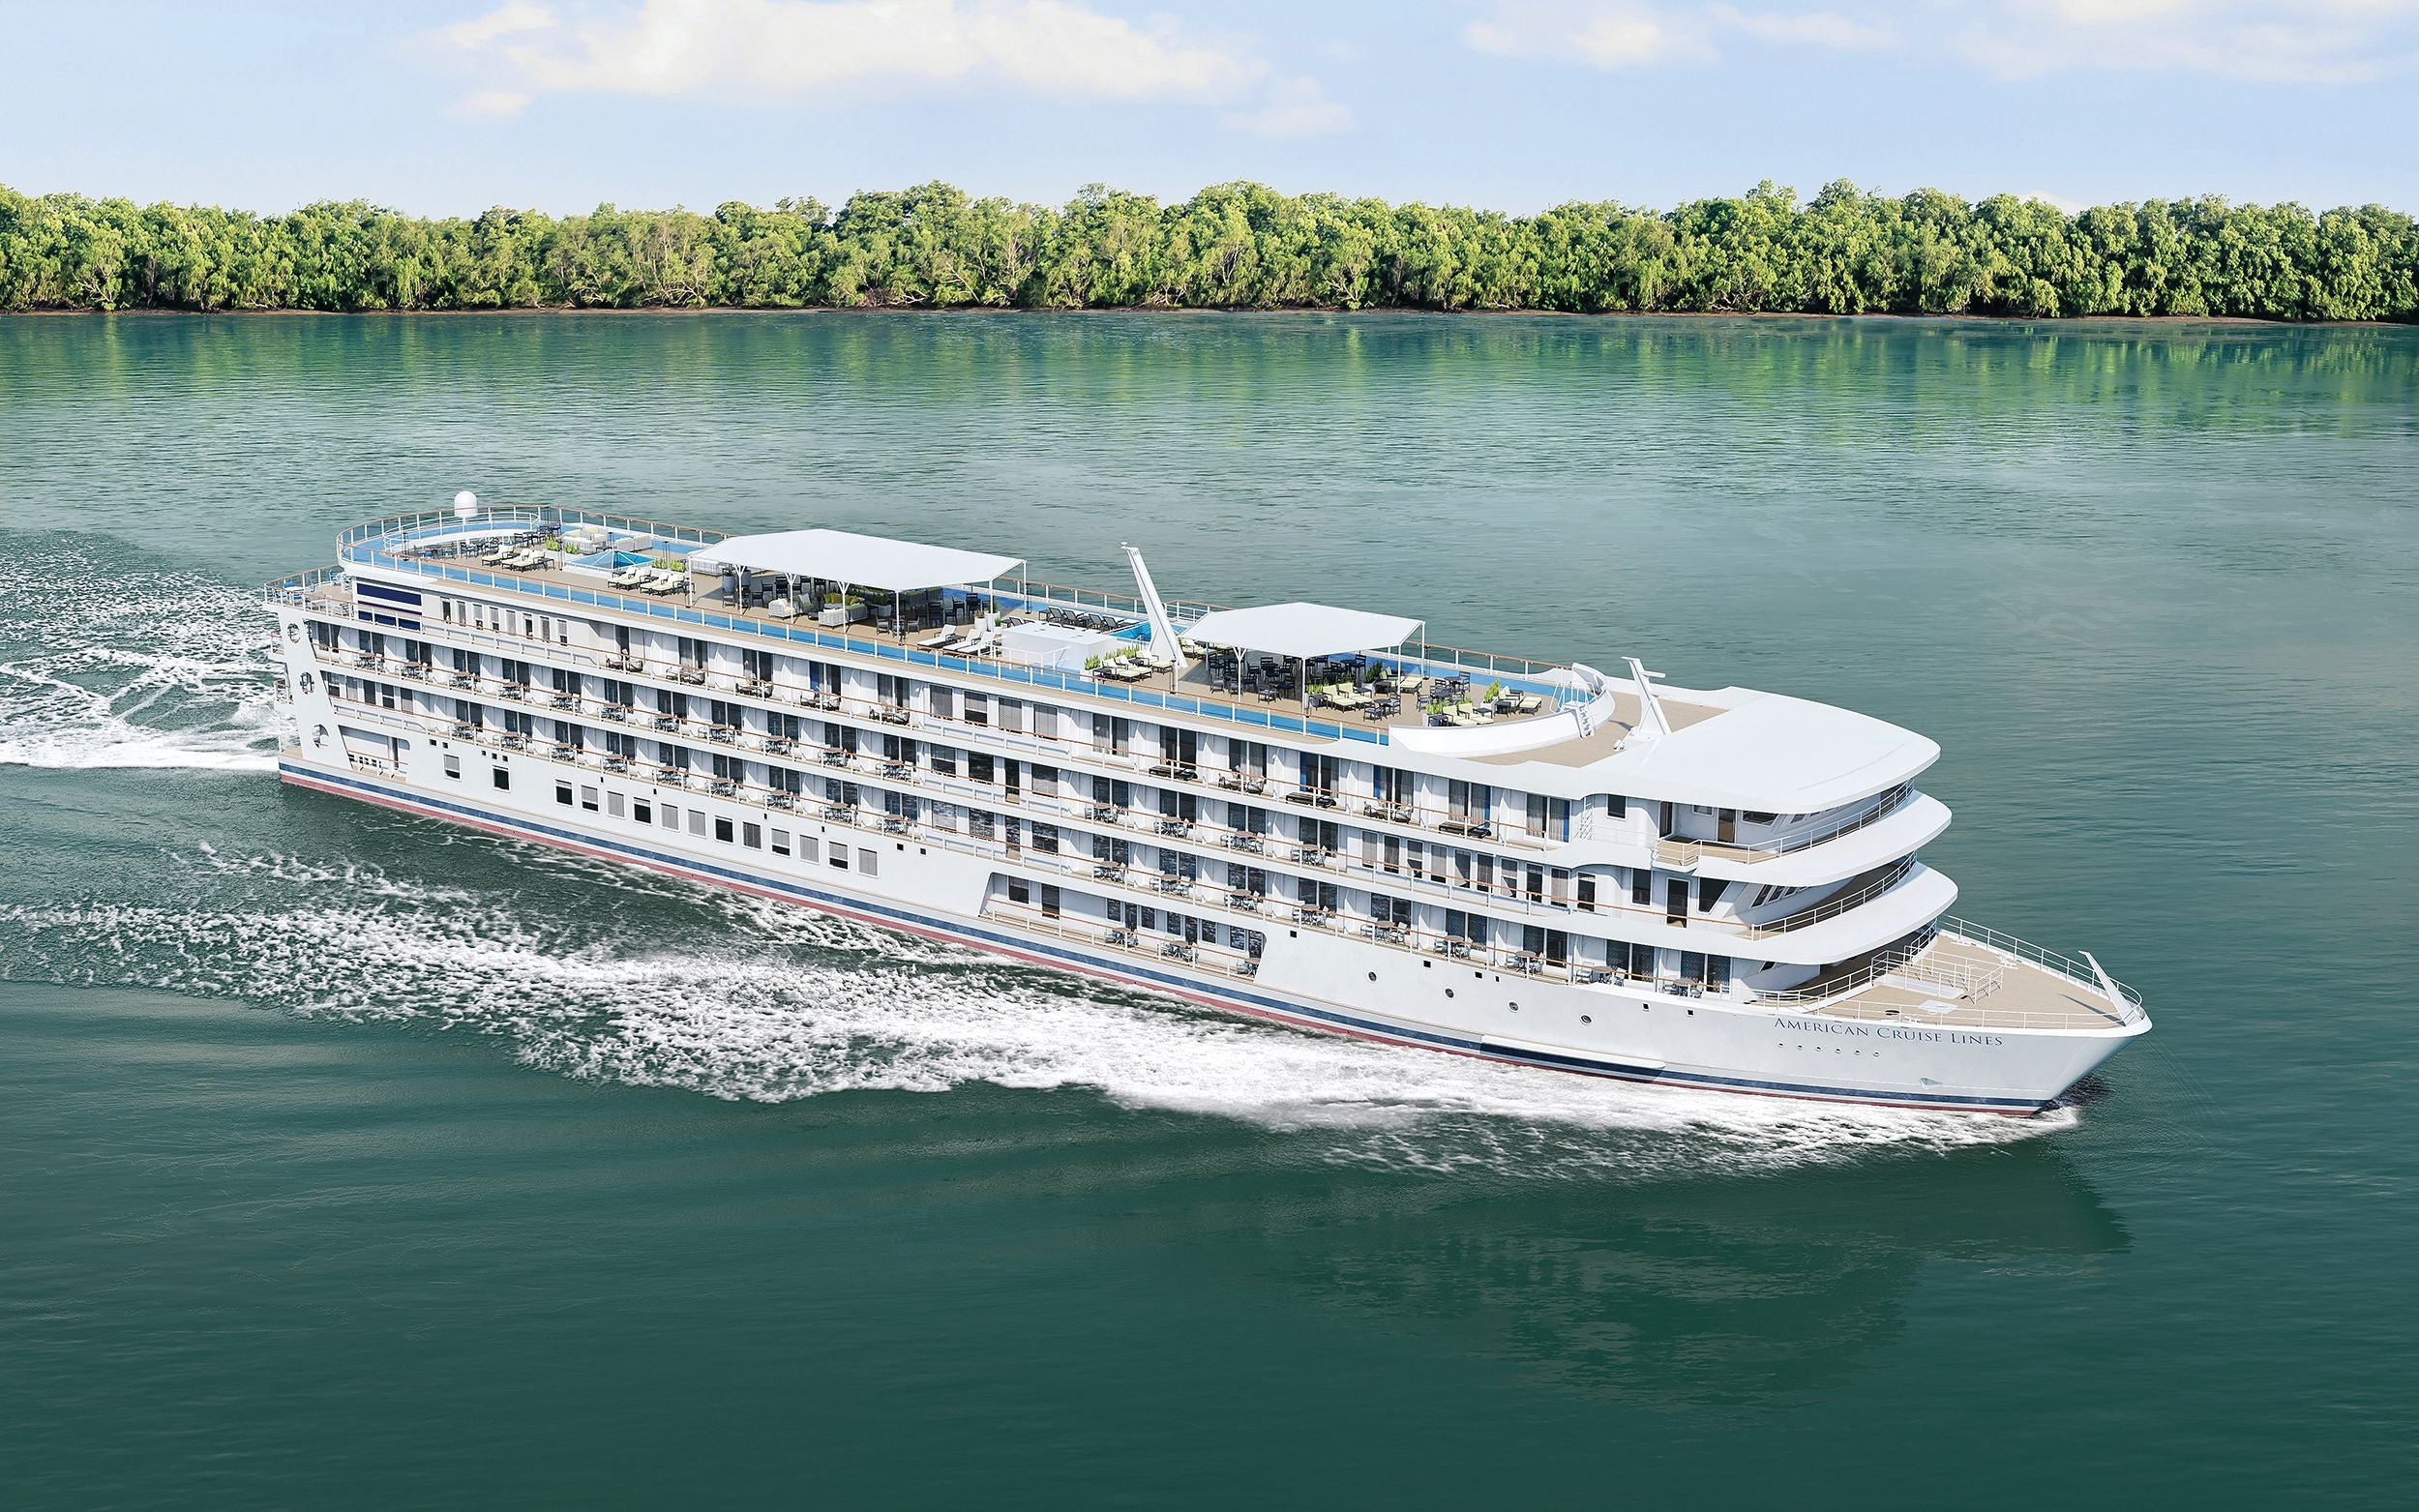 This cruise line is going to modernize its iconic paddlewheel ships